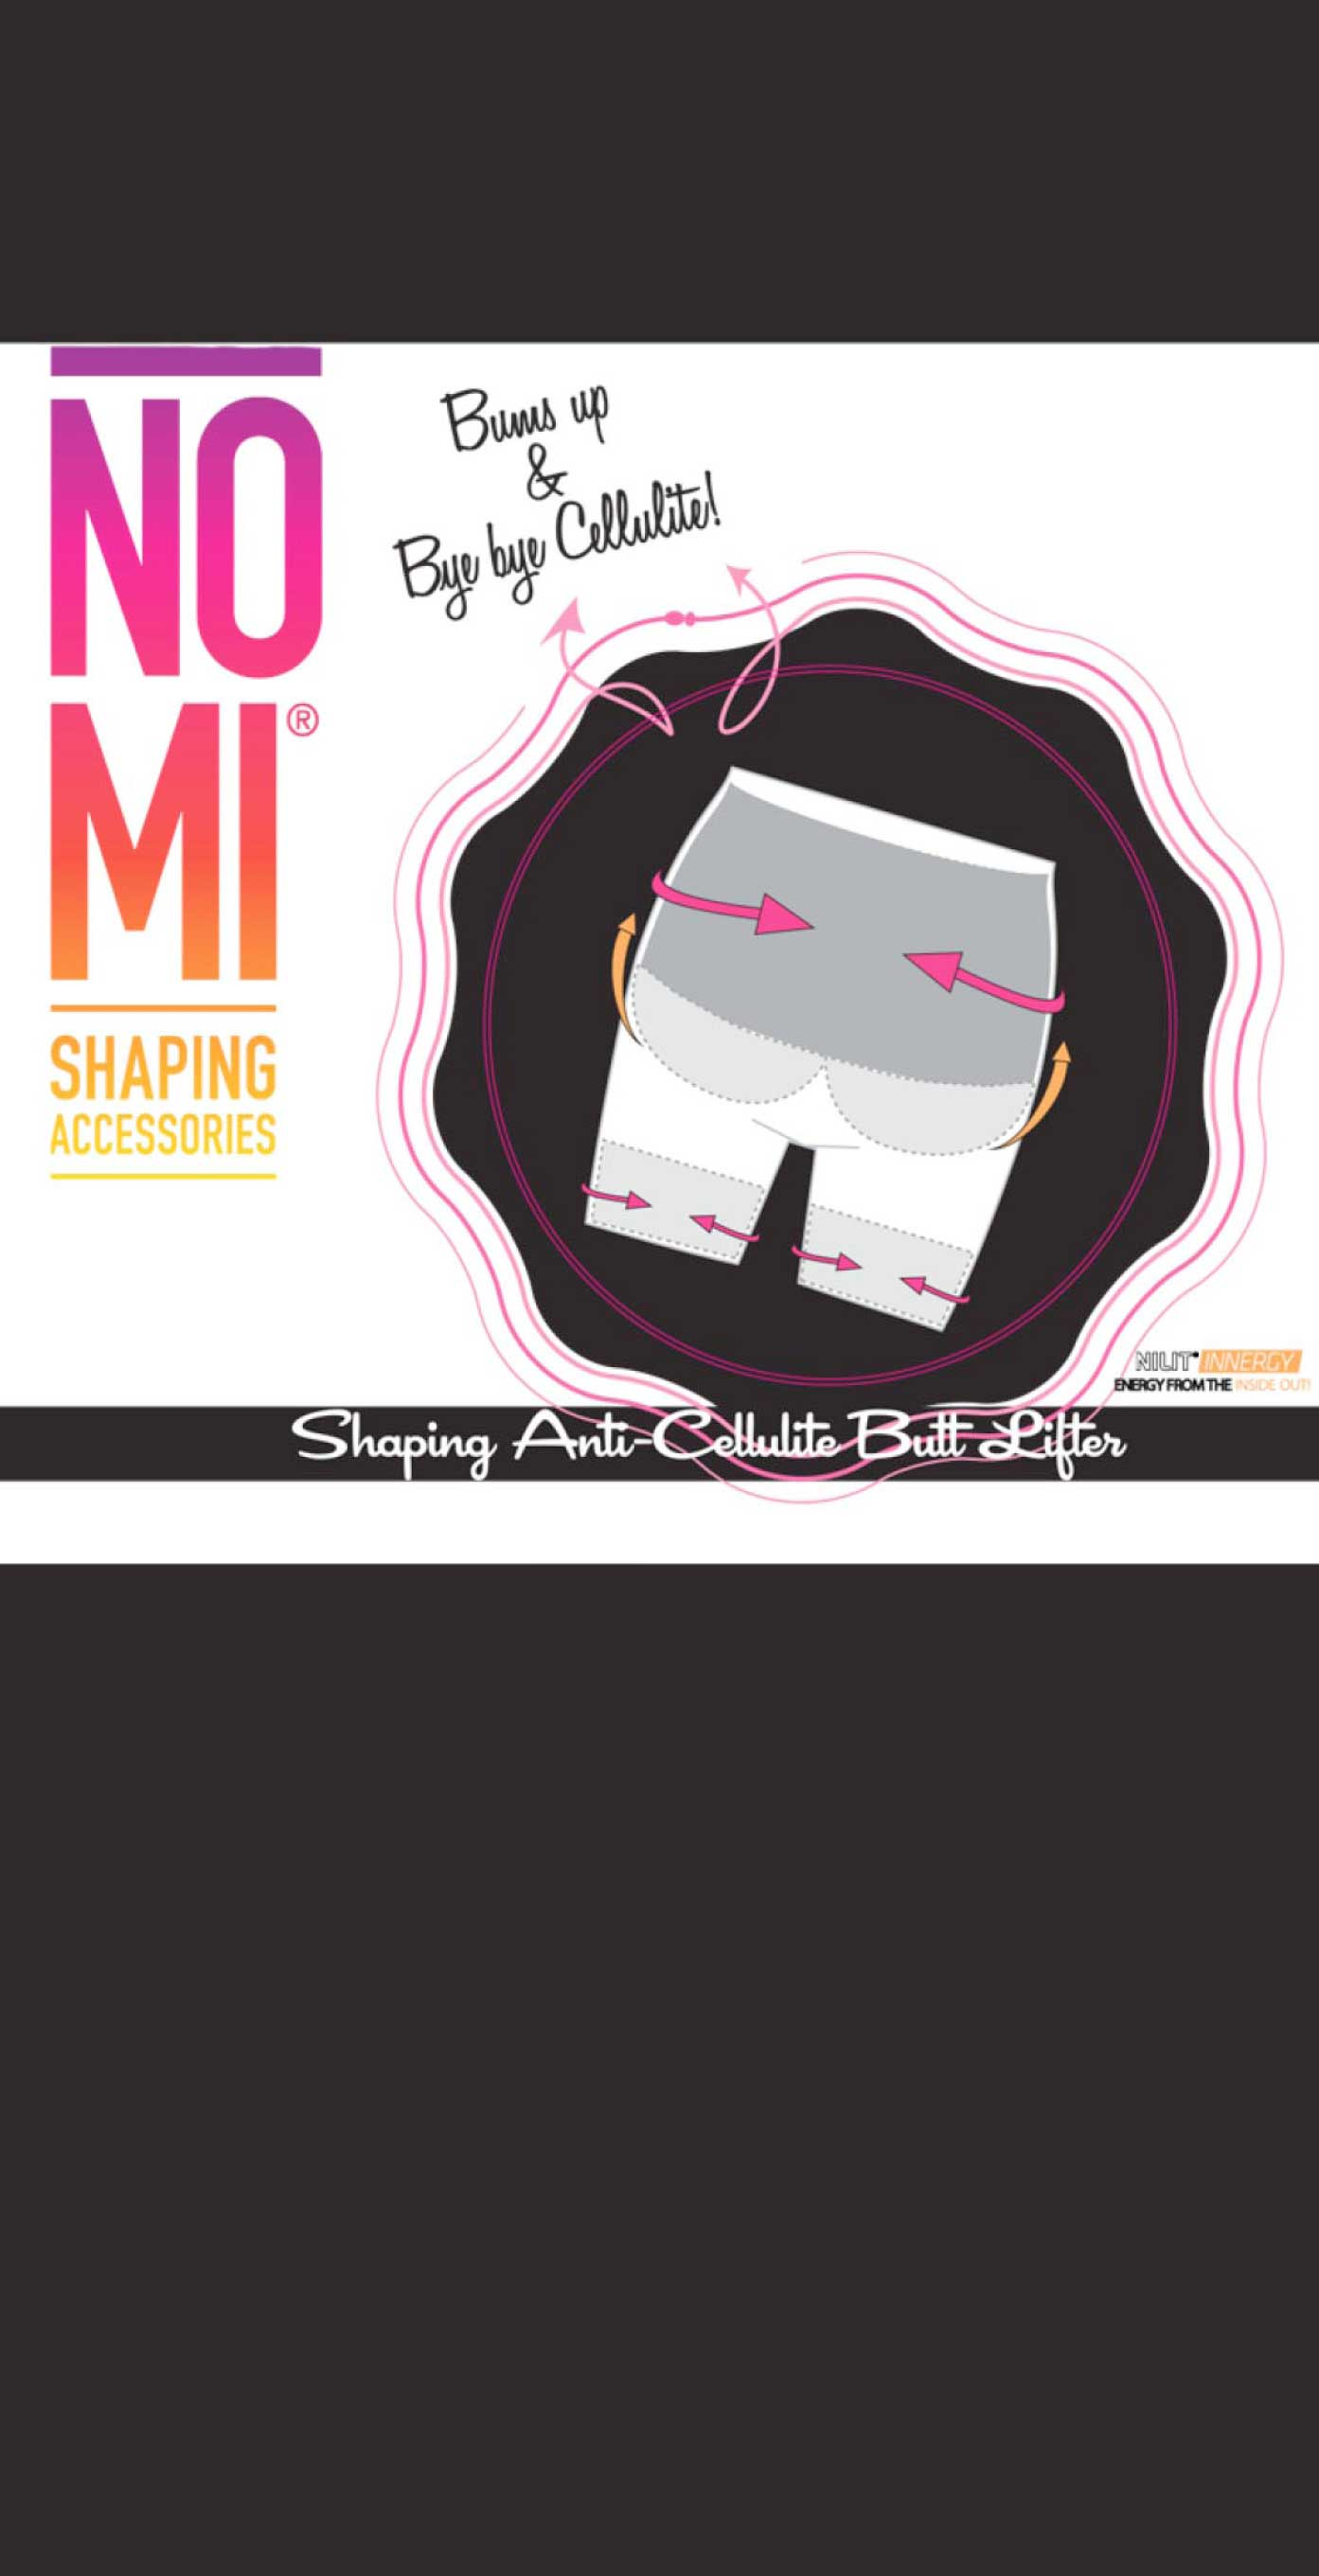 NO-MI shaping accessoires anti-cellulite butt lifter